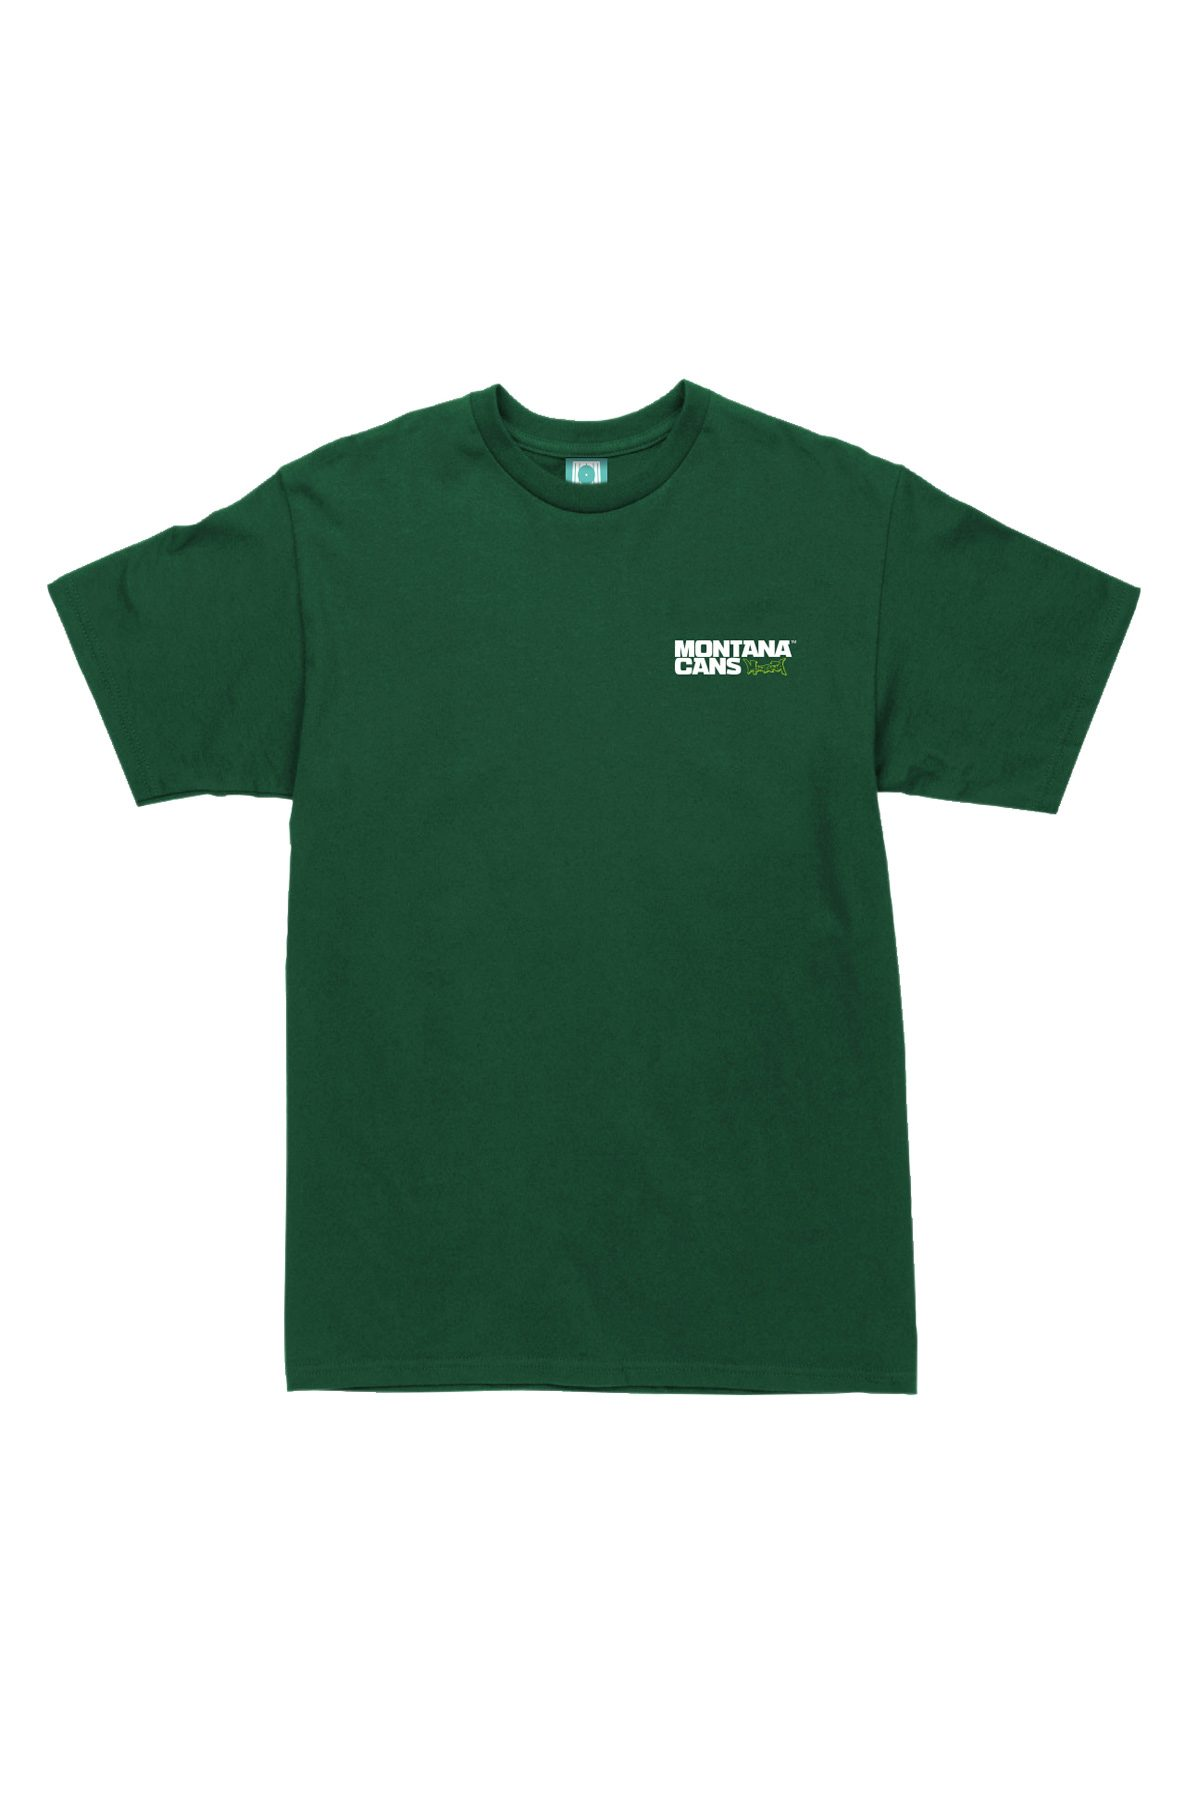 Montana TYPO+LOGO SMALL Forest Green T-Shirt